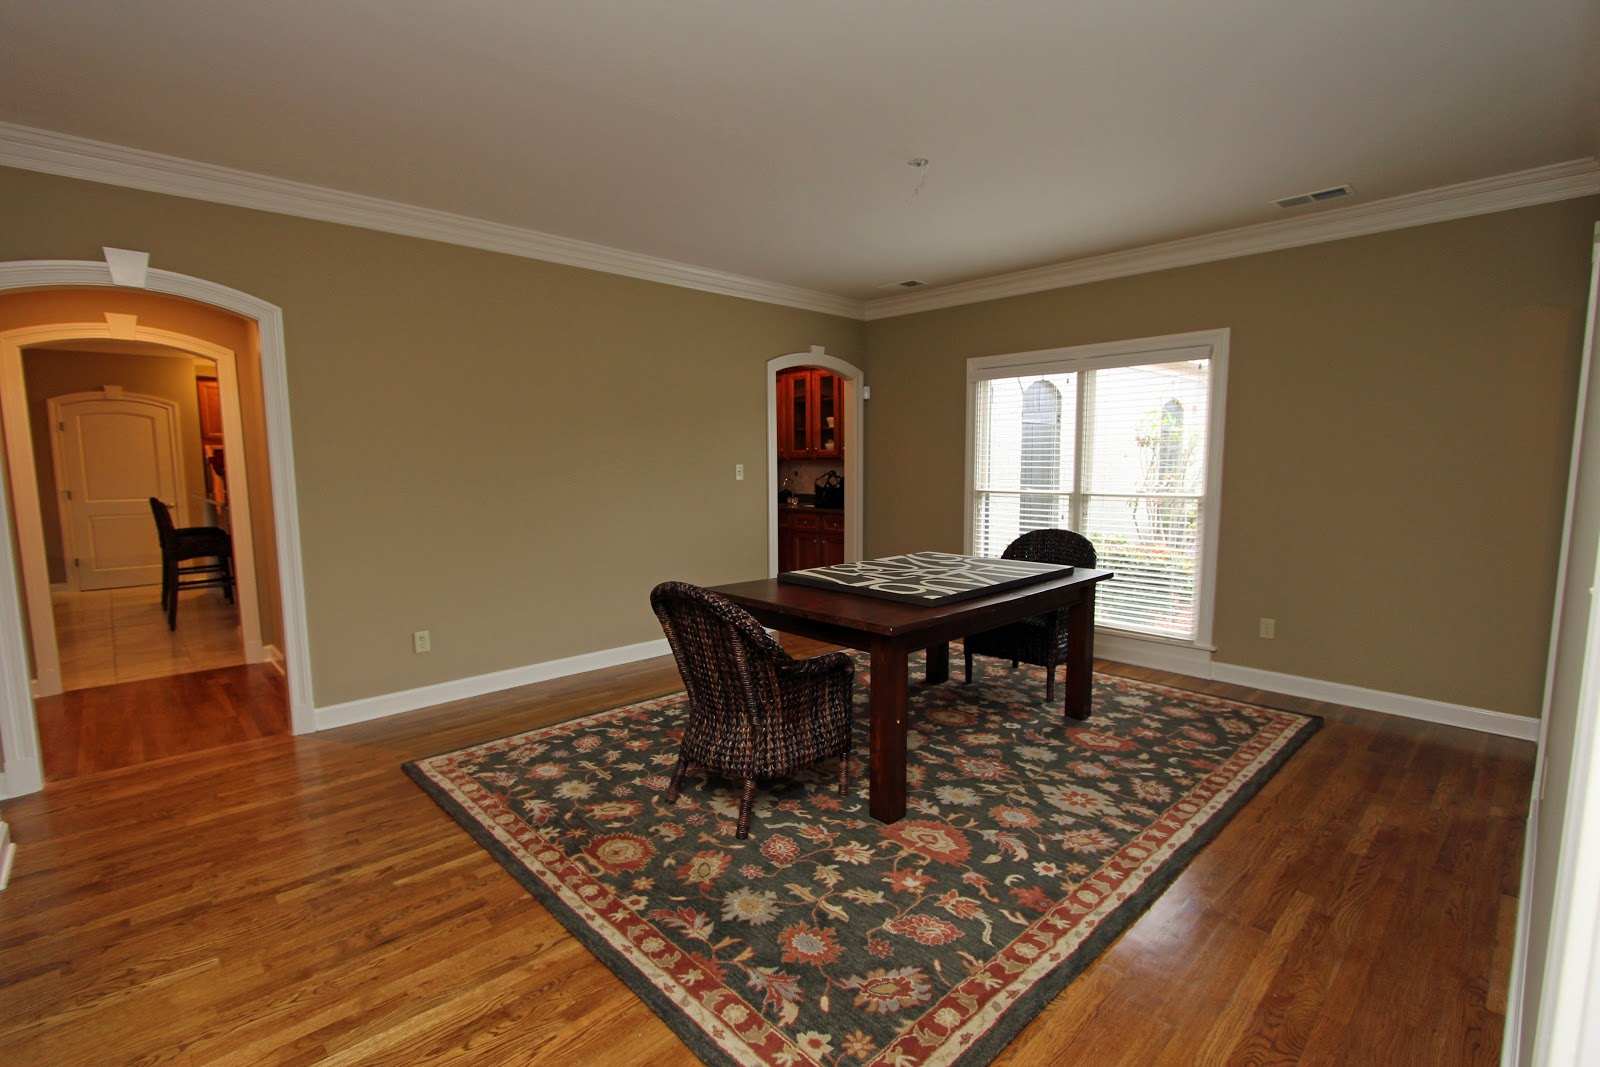 The Room Is Quite Large To Give You Some Perspective That Rug Pottery Barn Sydney From